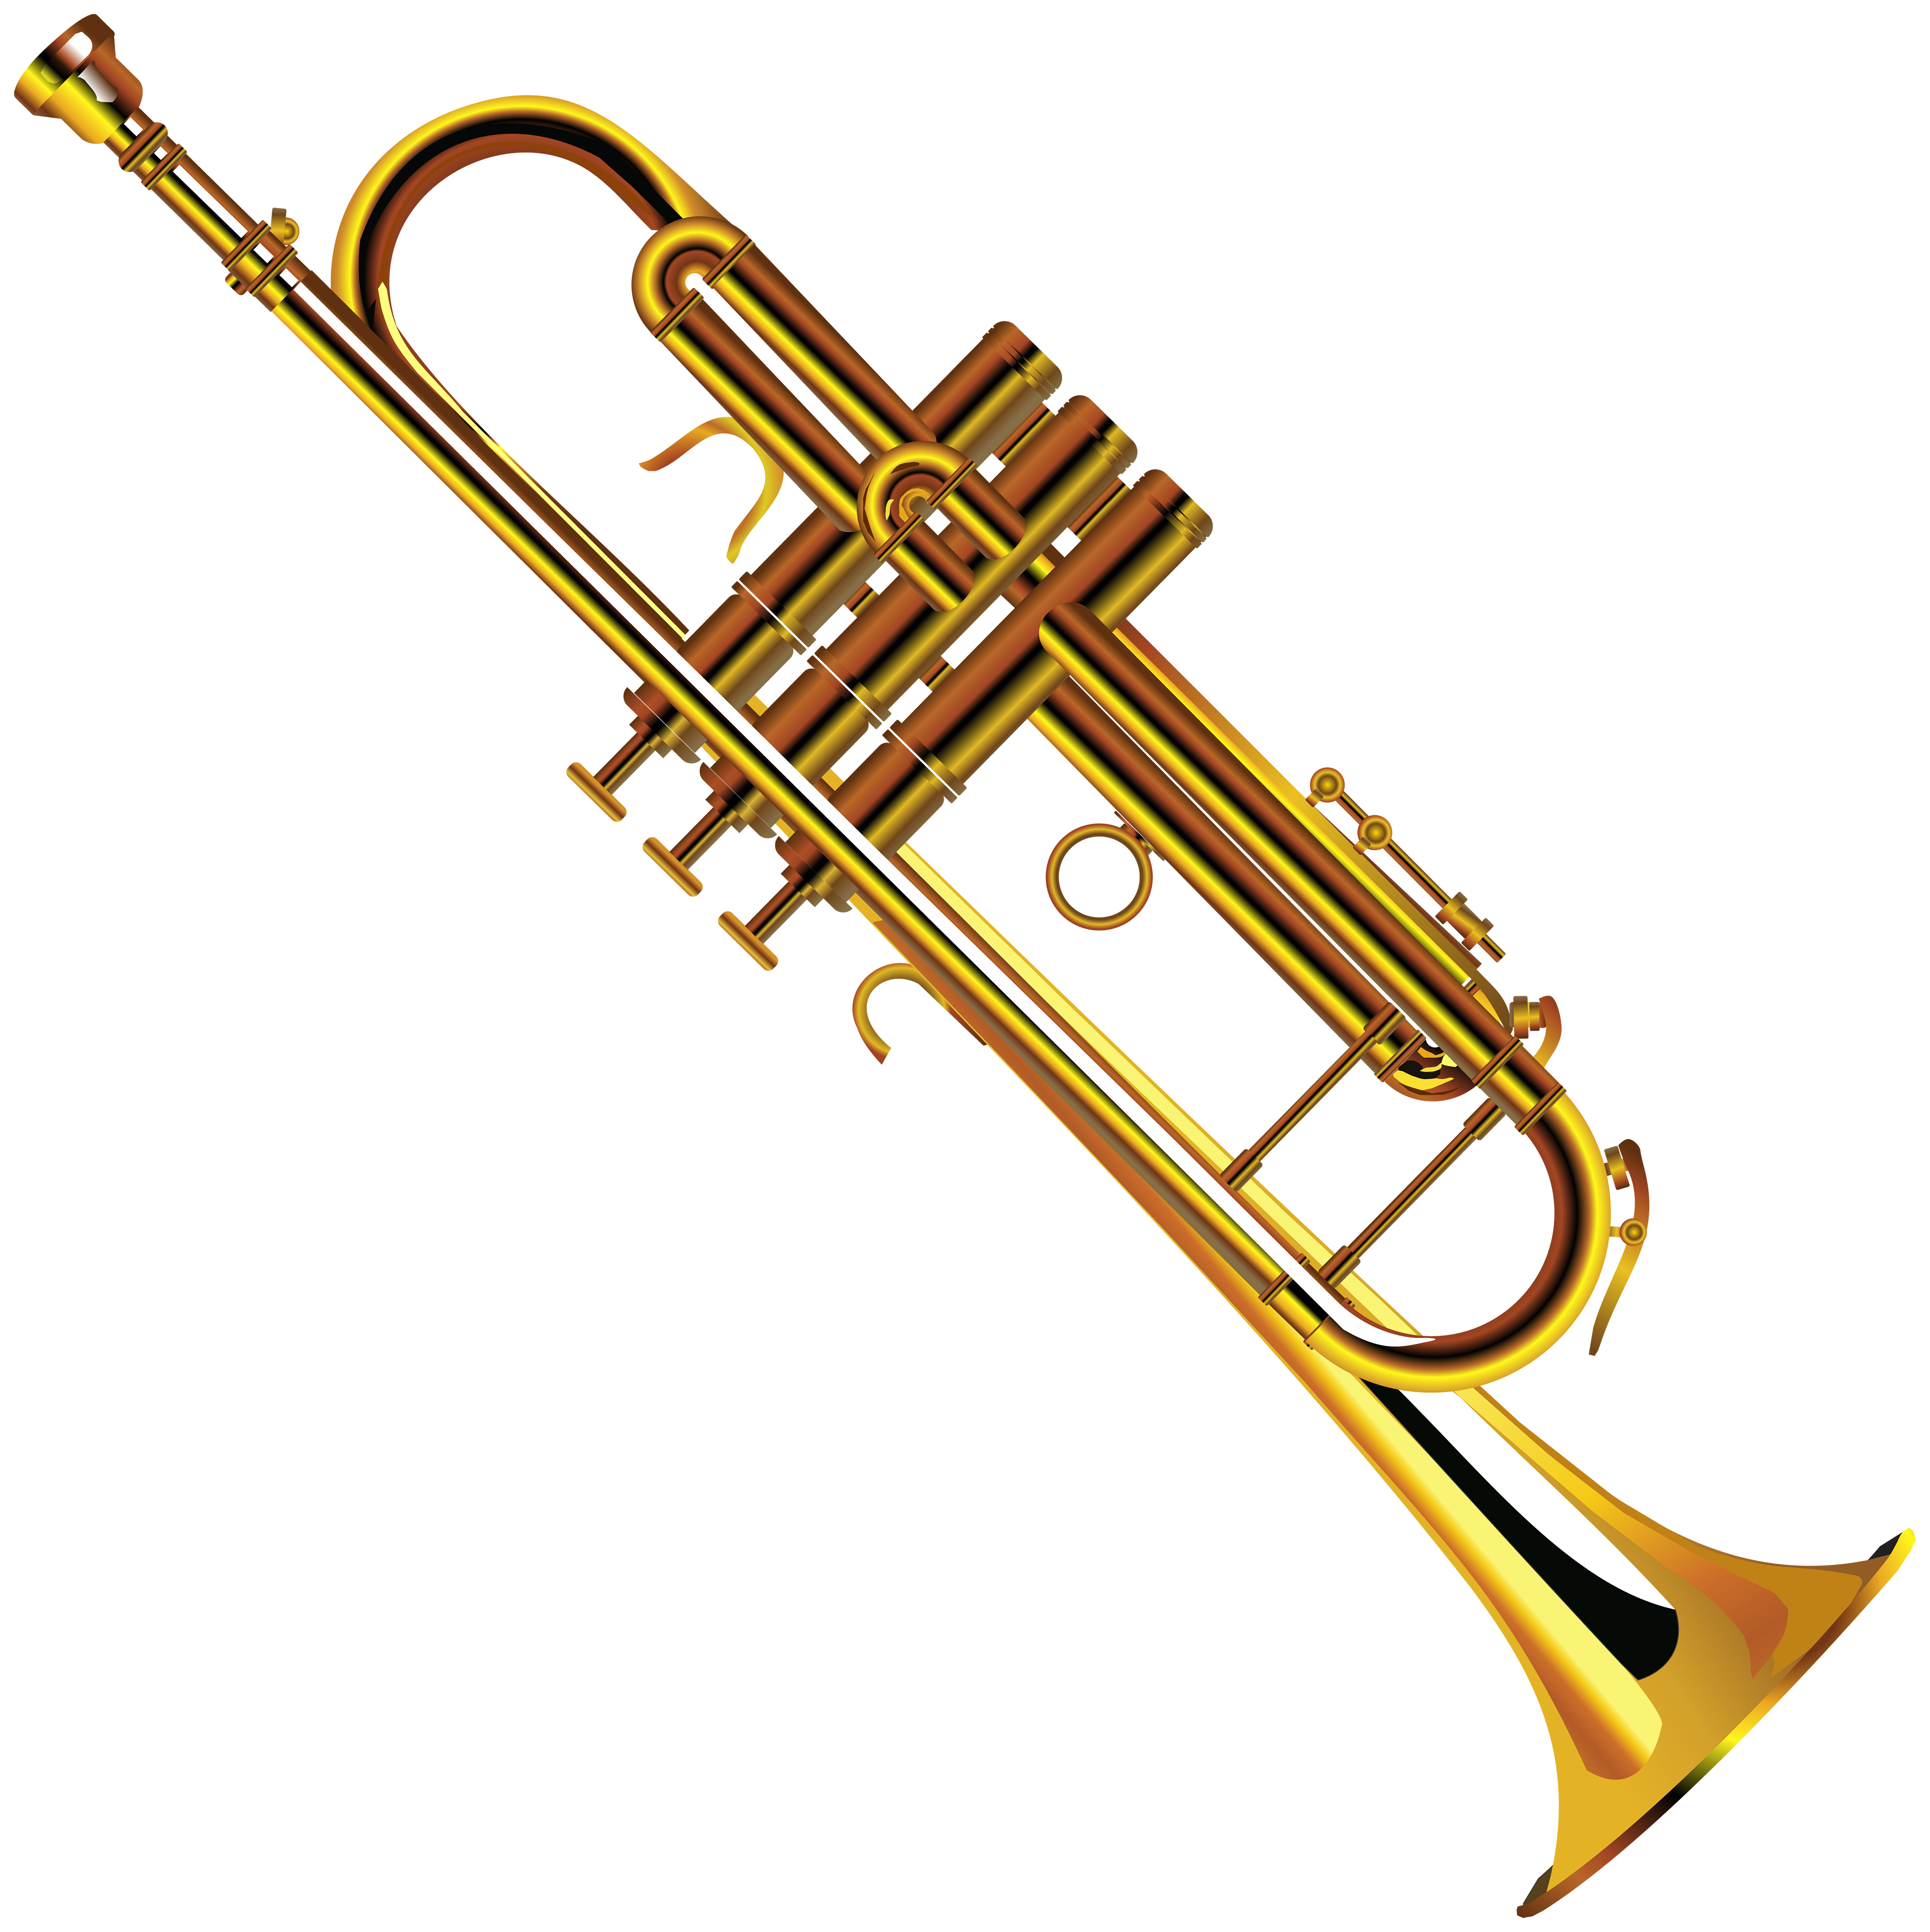 download brass band instrument free png transparent image saxophone clip art free saxophone clip art vector free